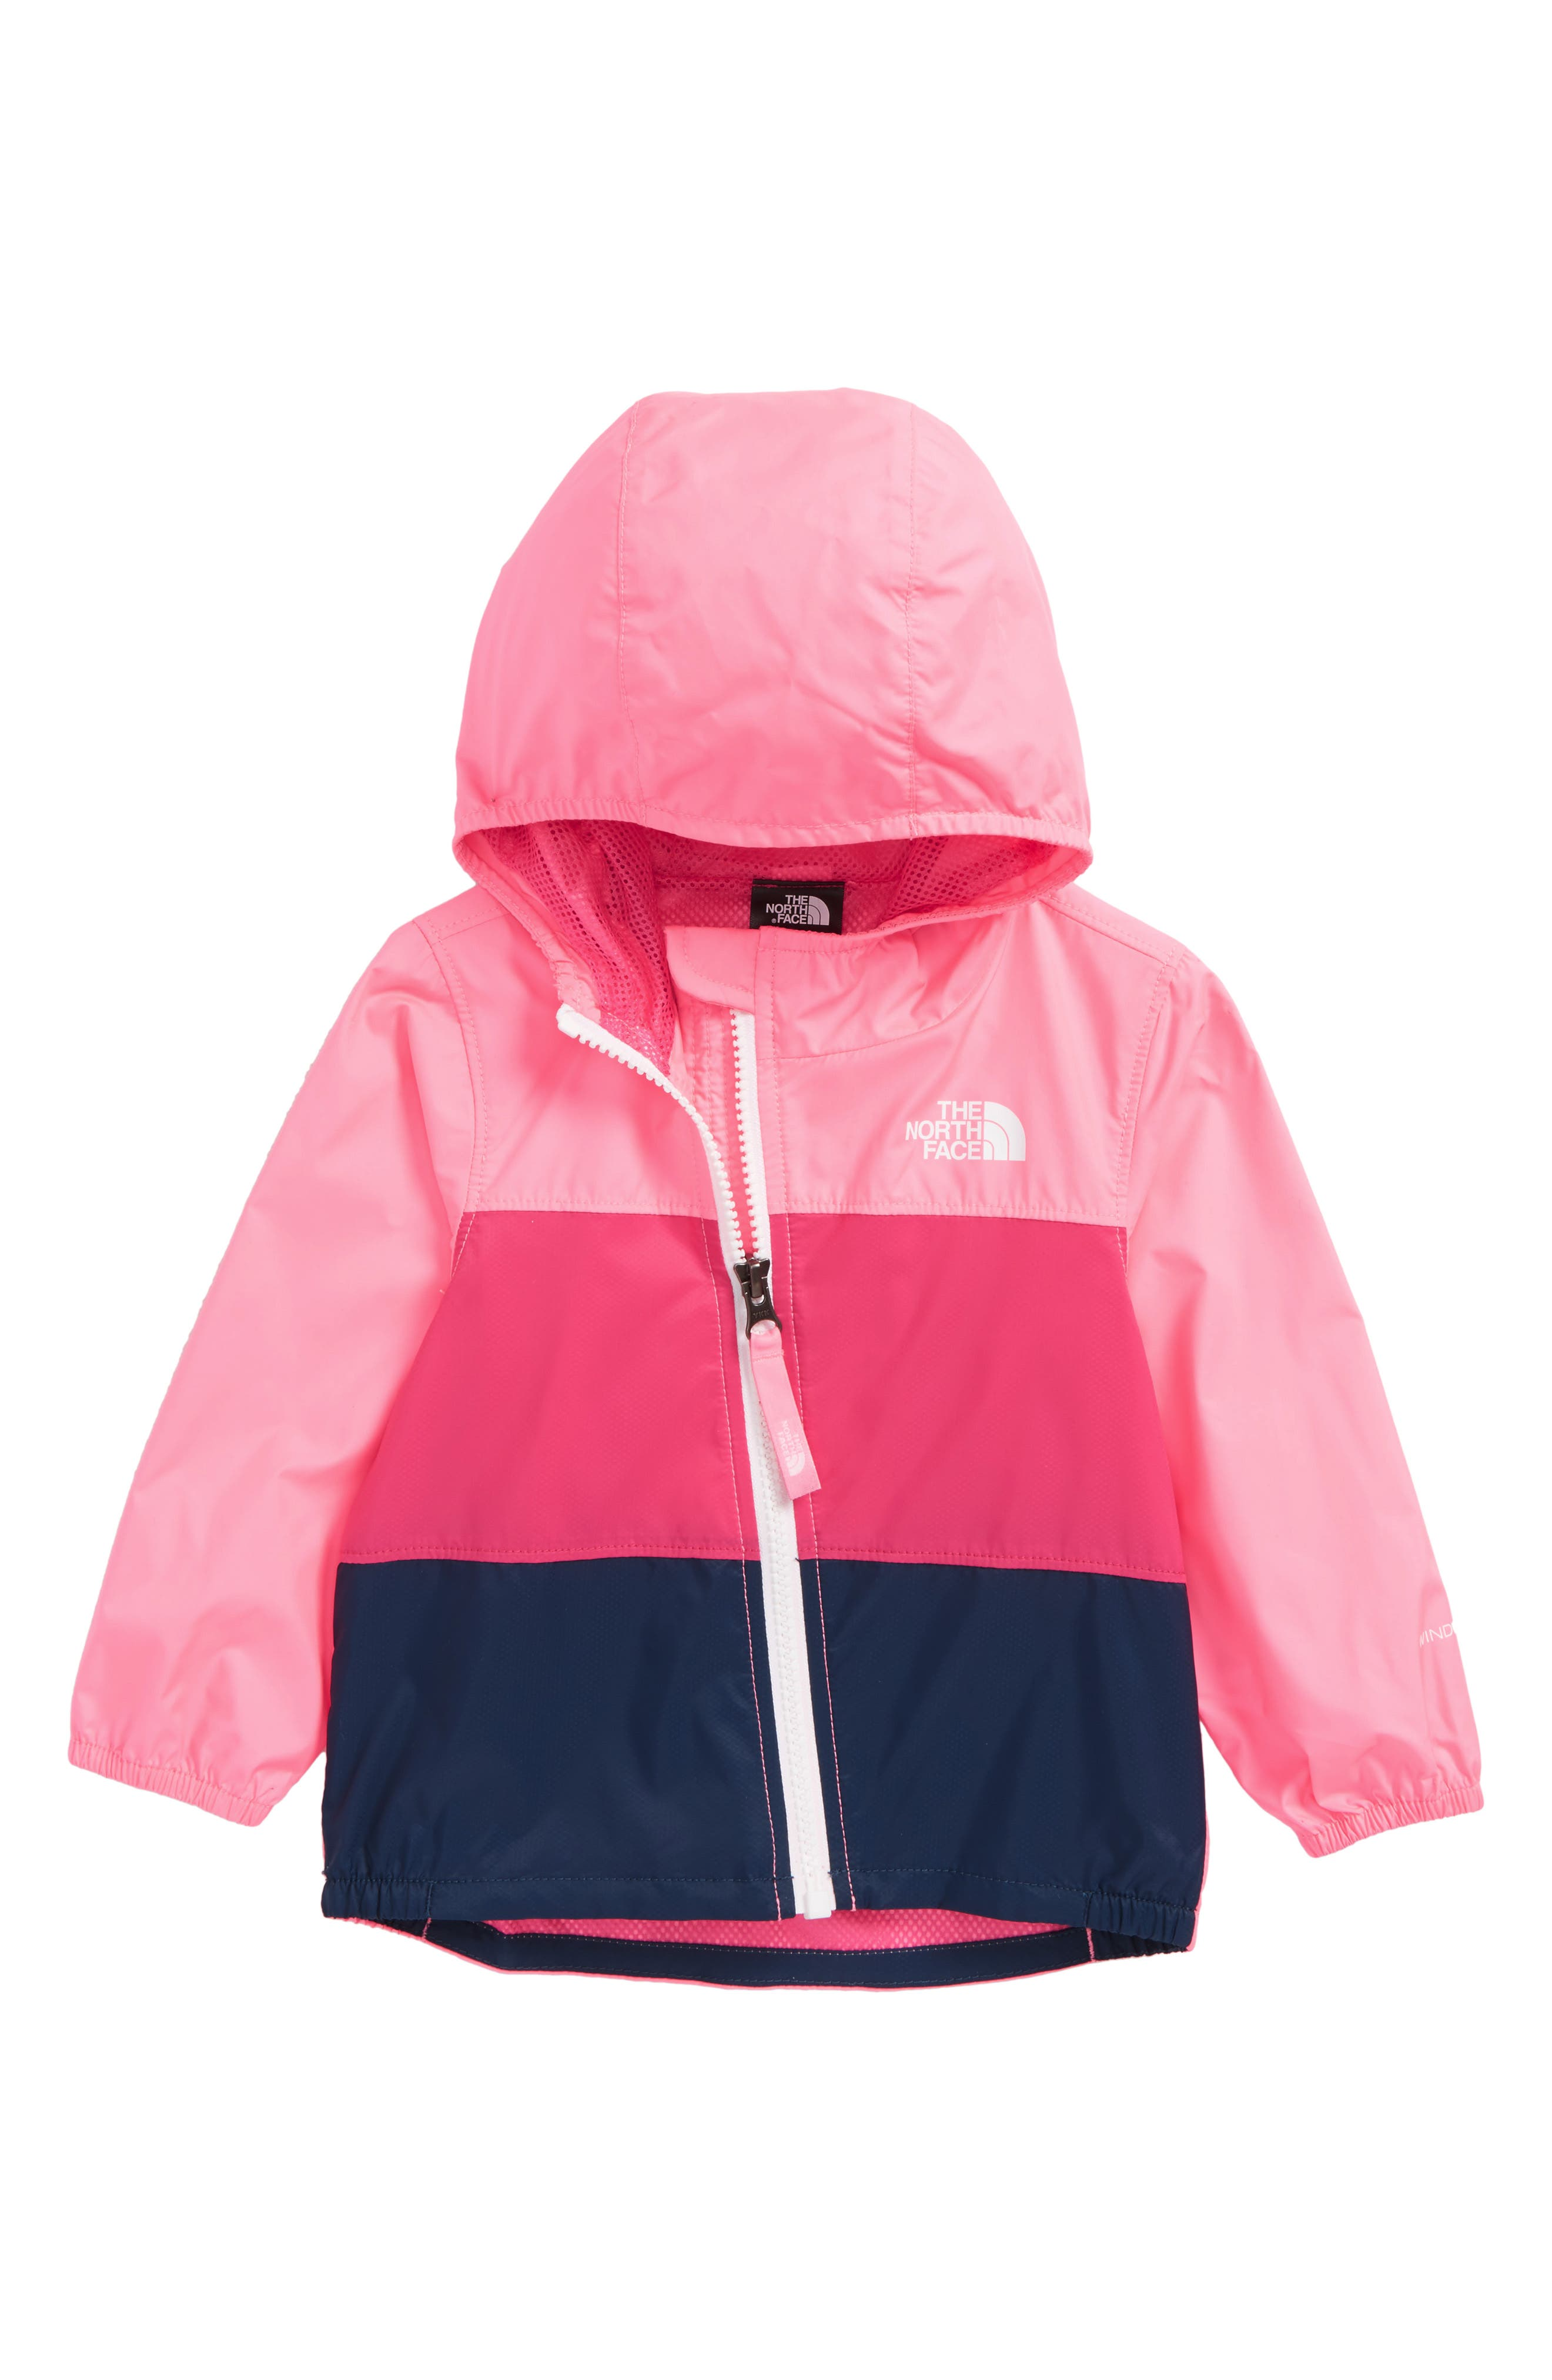 Main Image - The North Face Flurry Hooded Windbreaker (Baby Girls)